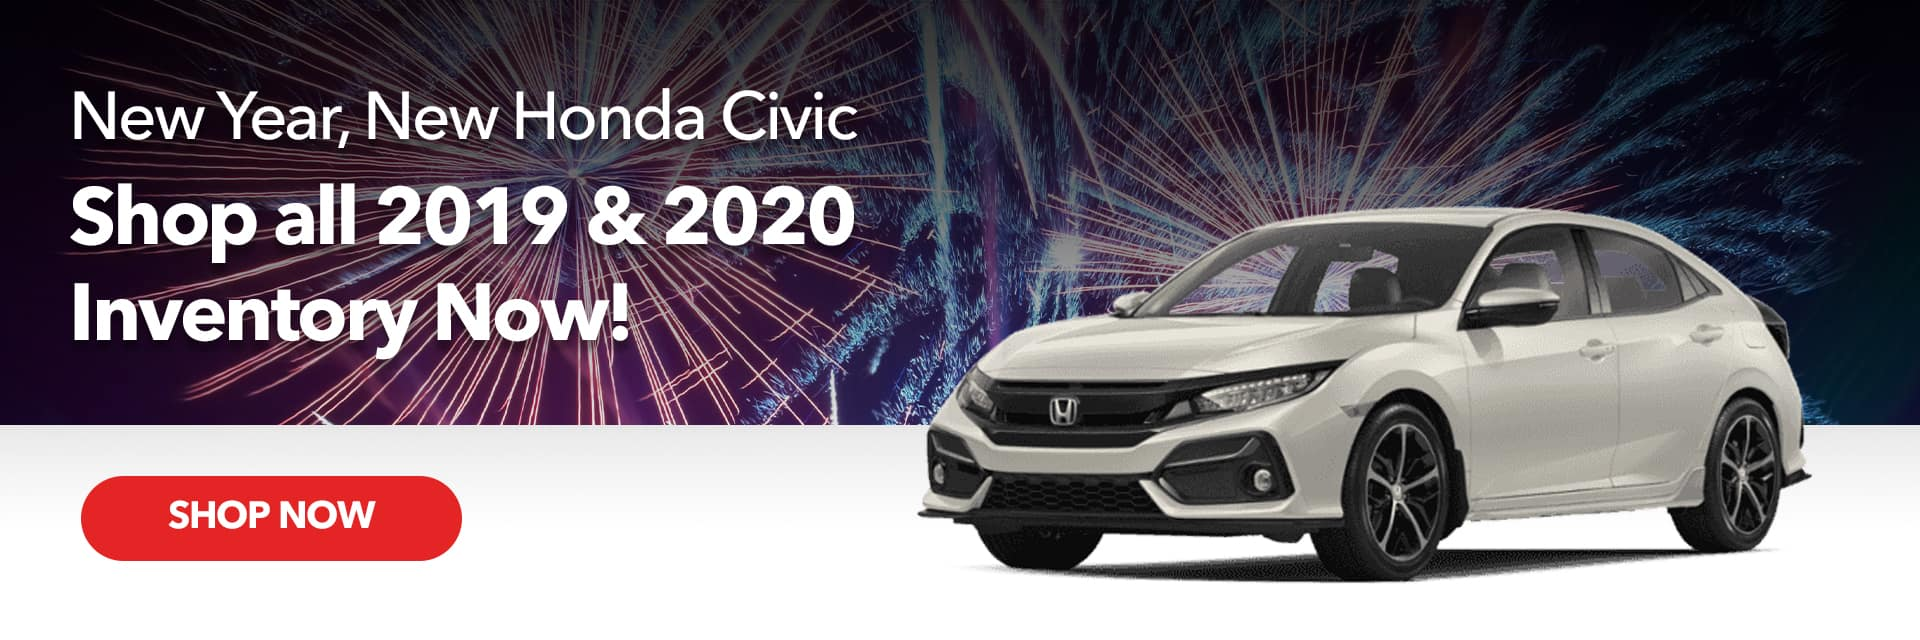 Link to January Offers - Honda Civic